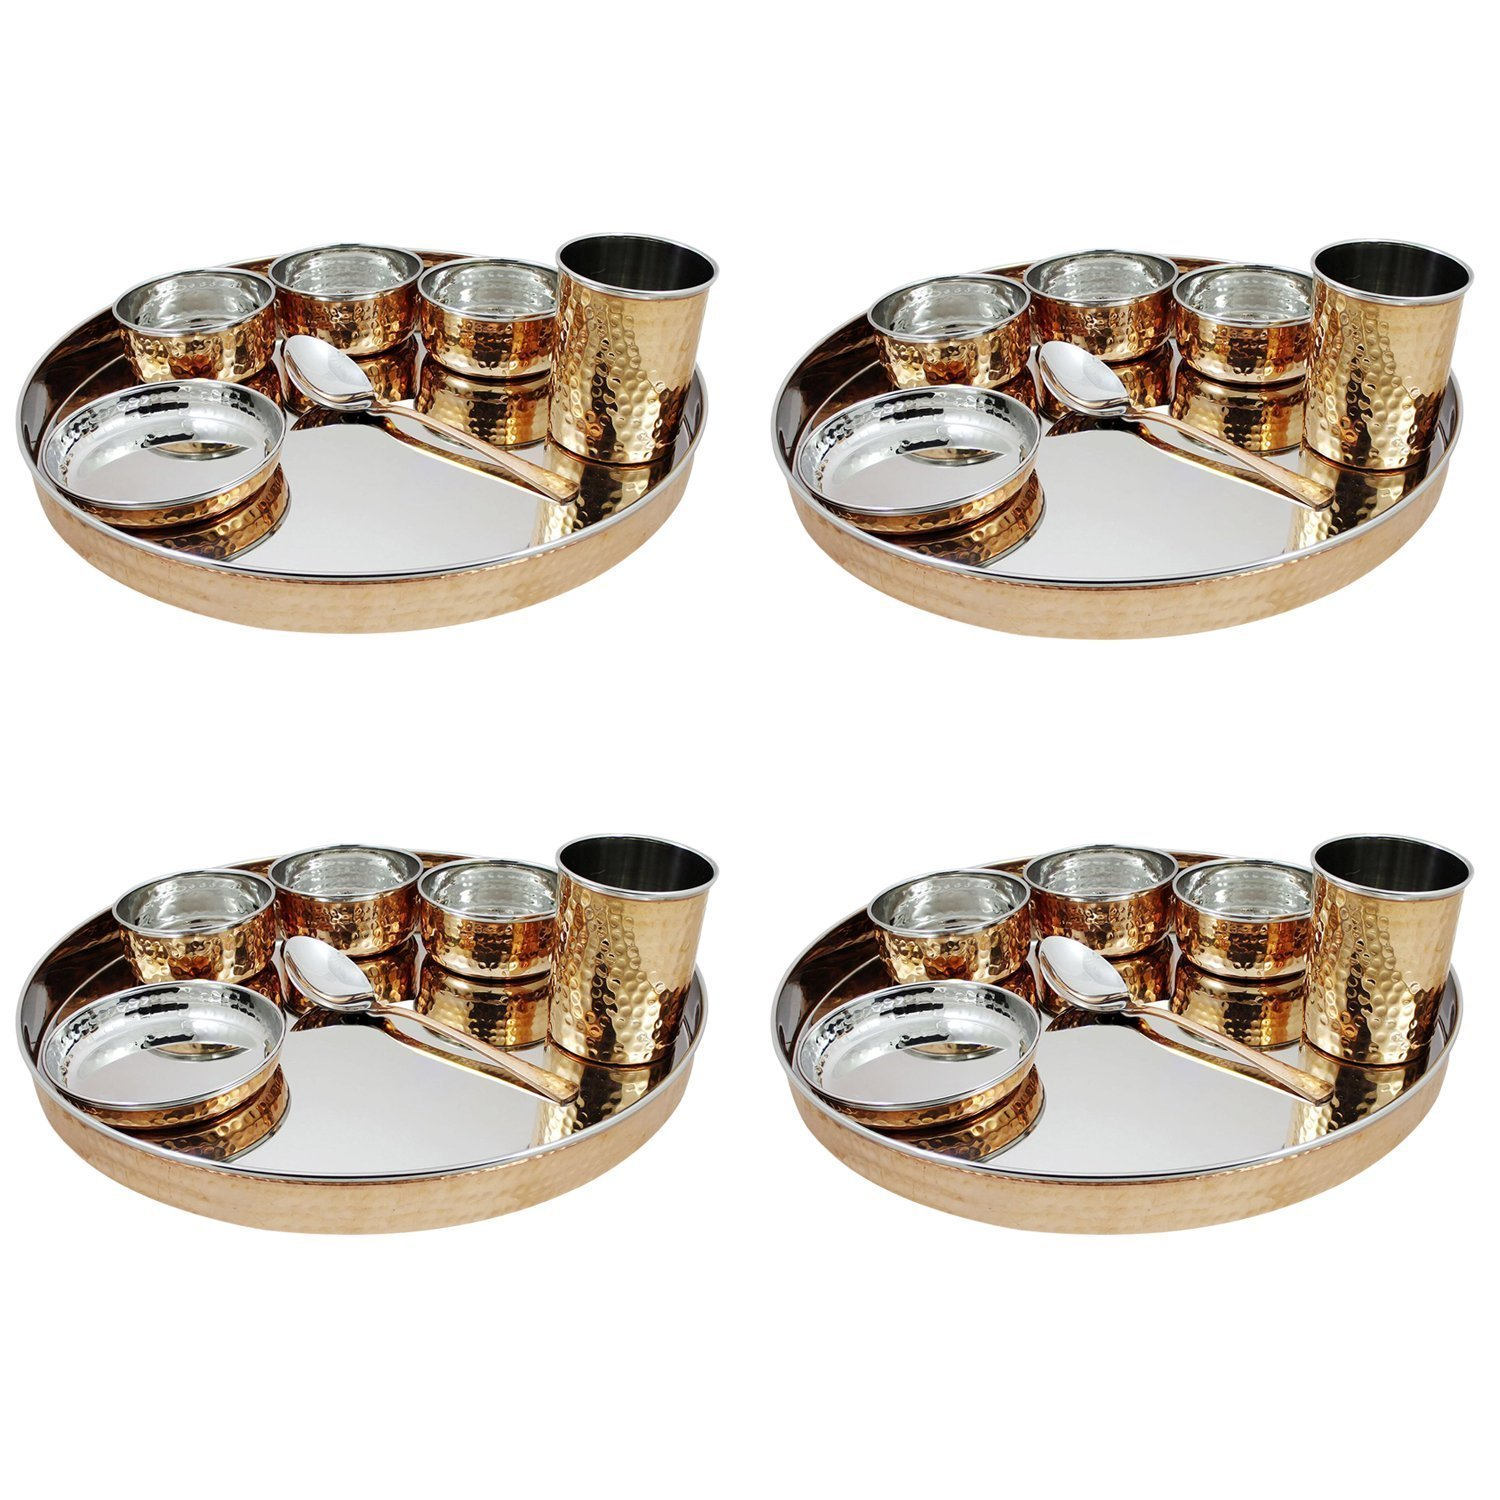 Indian dinnerware 28-Piece set stainless steel copper traditional dinner set of thali plate, bowls, tumbler and spoon, diameter 13 inch